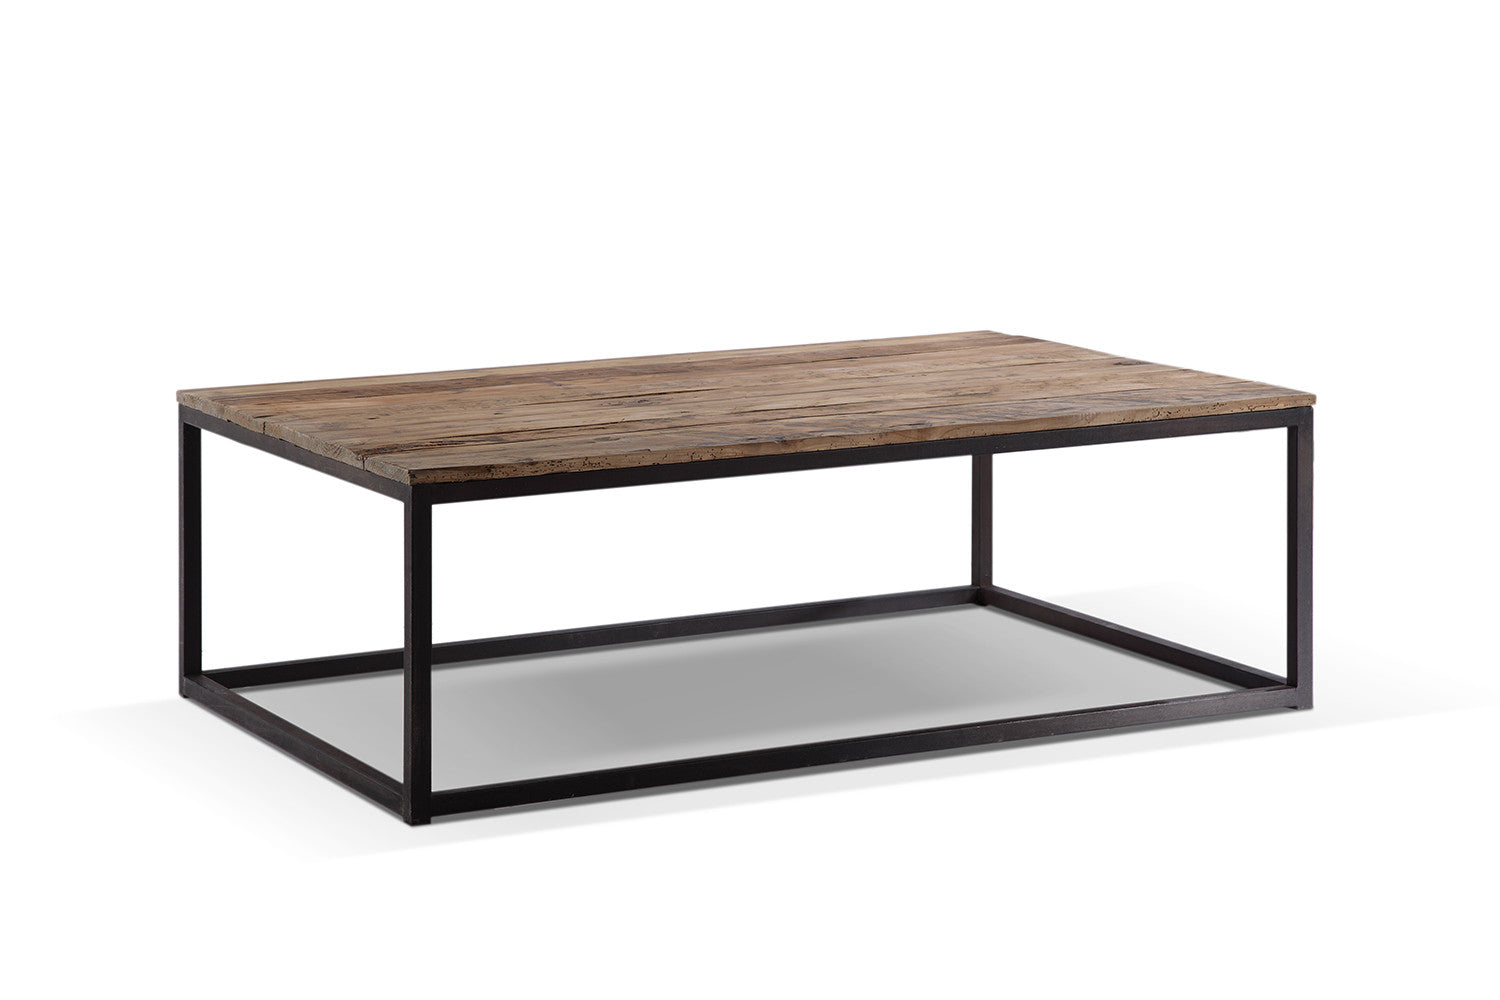 Table basse industrielle en m tal et bois tb02 rose - Table basse pliante bois ...